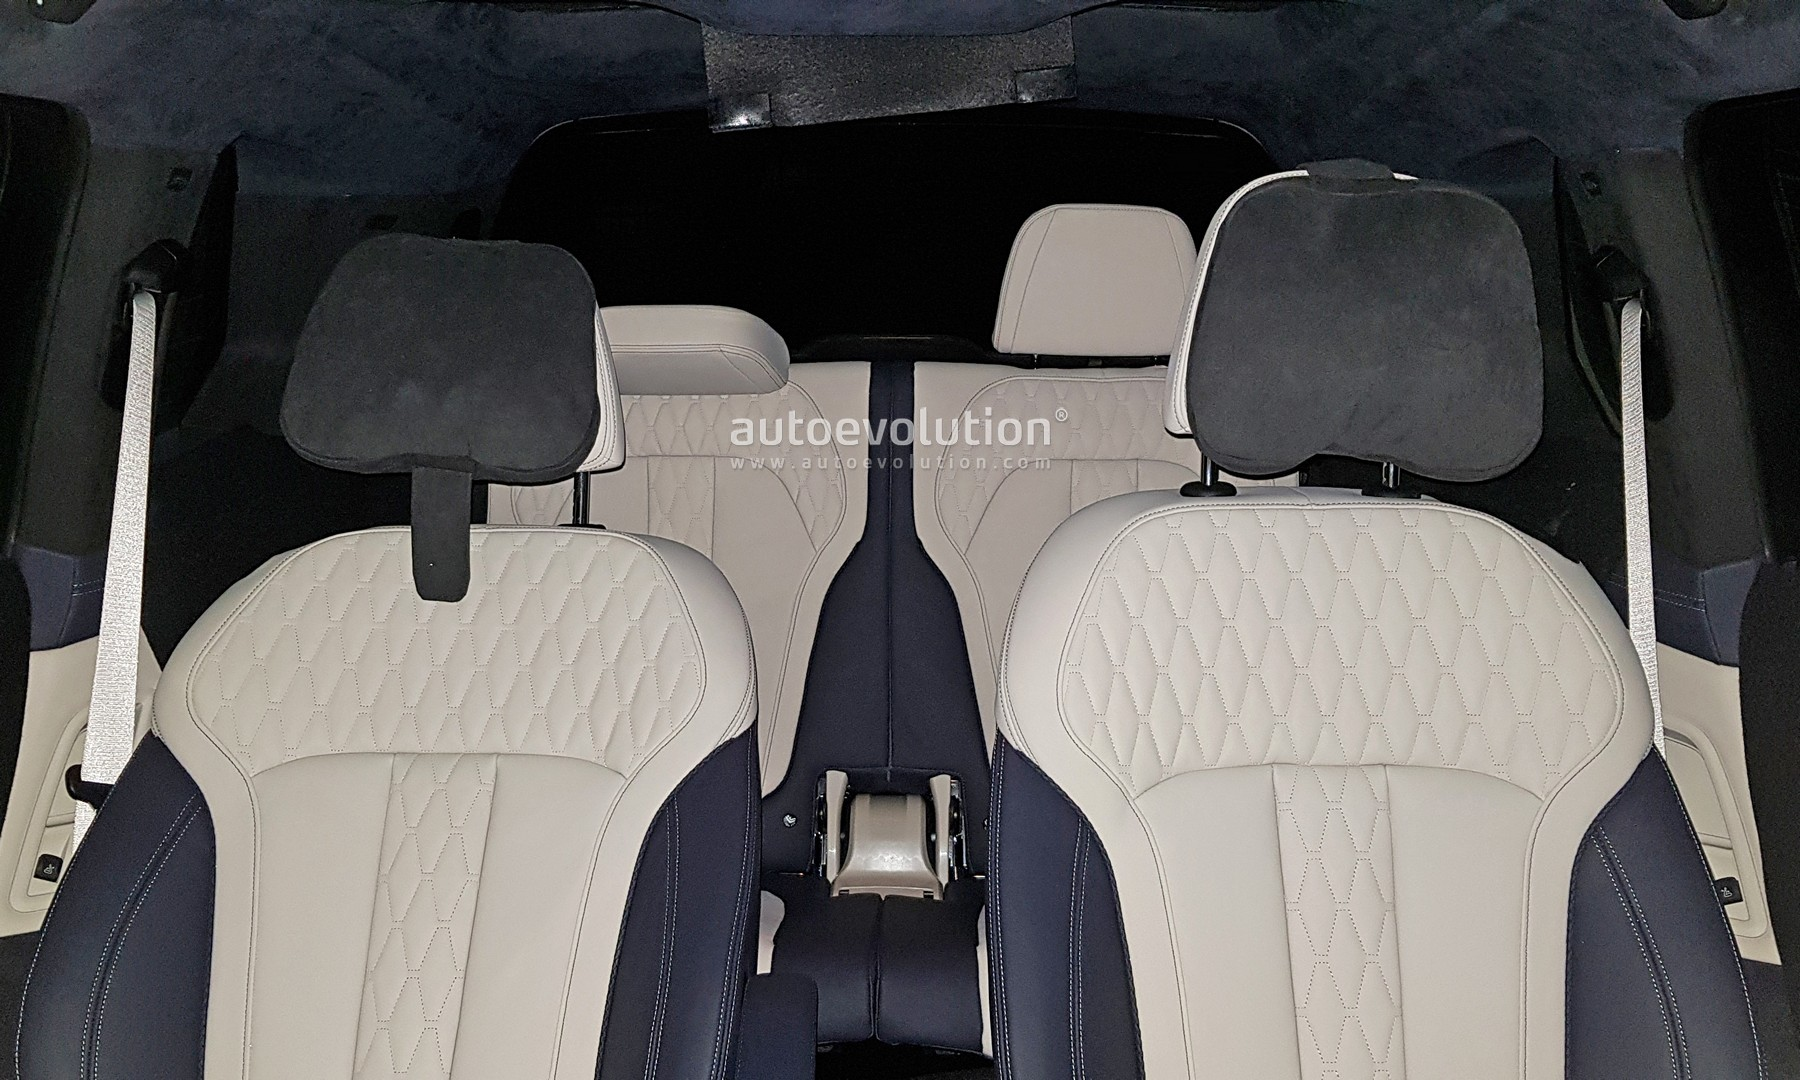 BMW X7 Shows Awesome 6-Seat Interior in Latest Spyshots ...